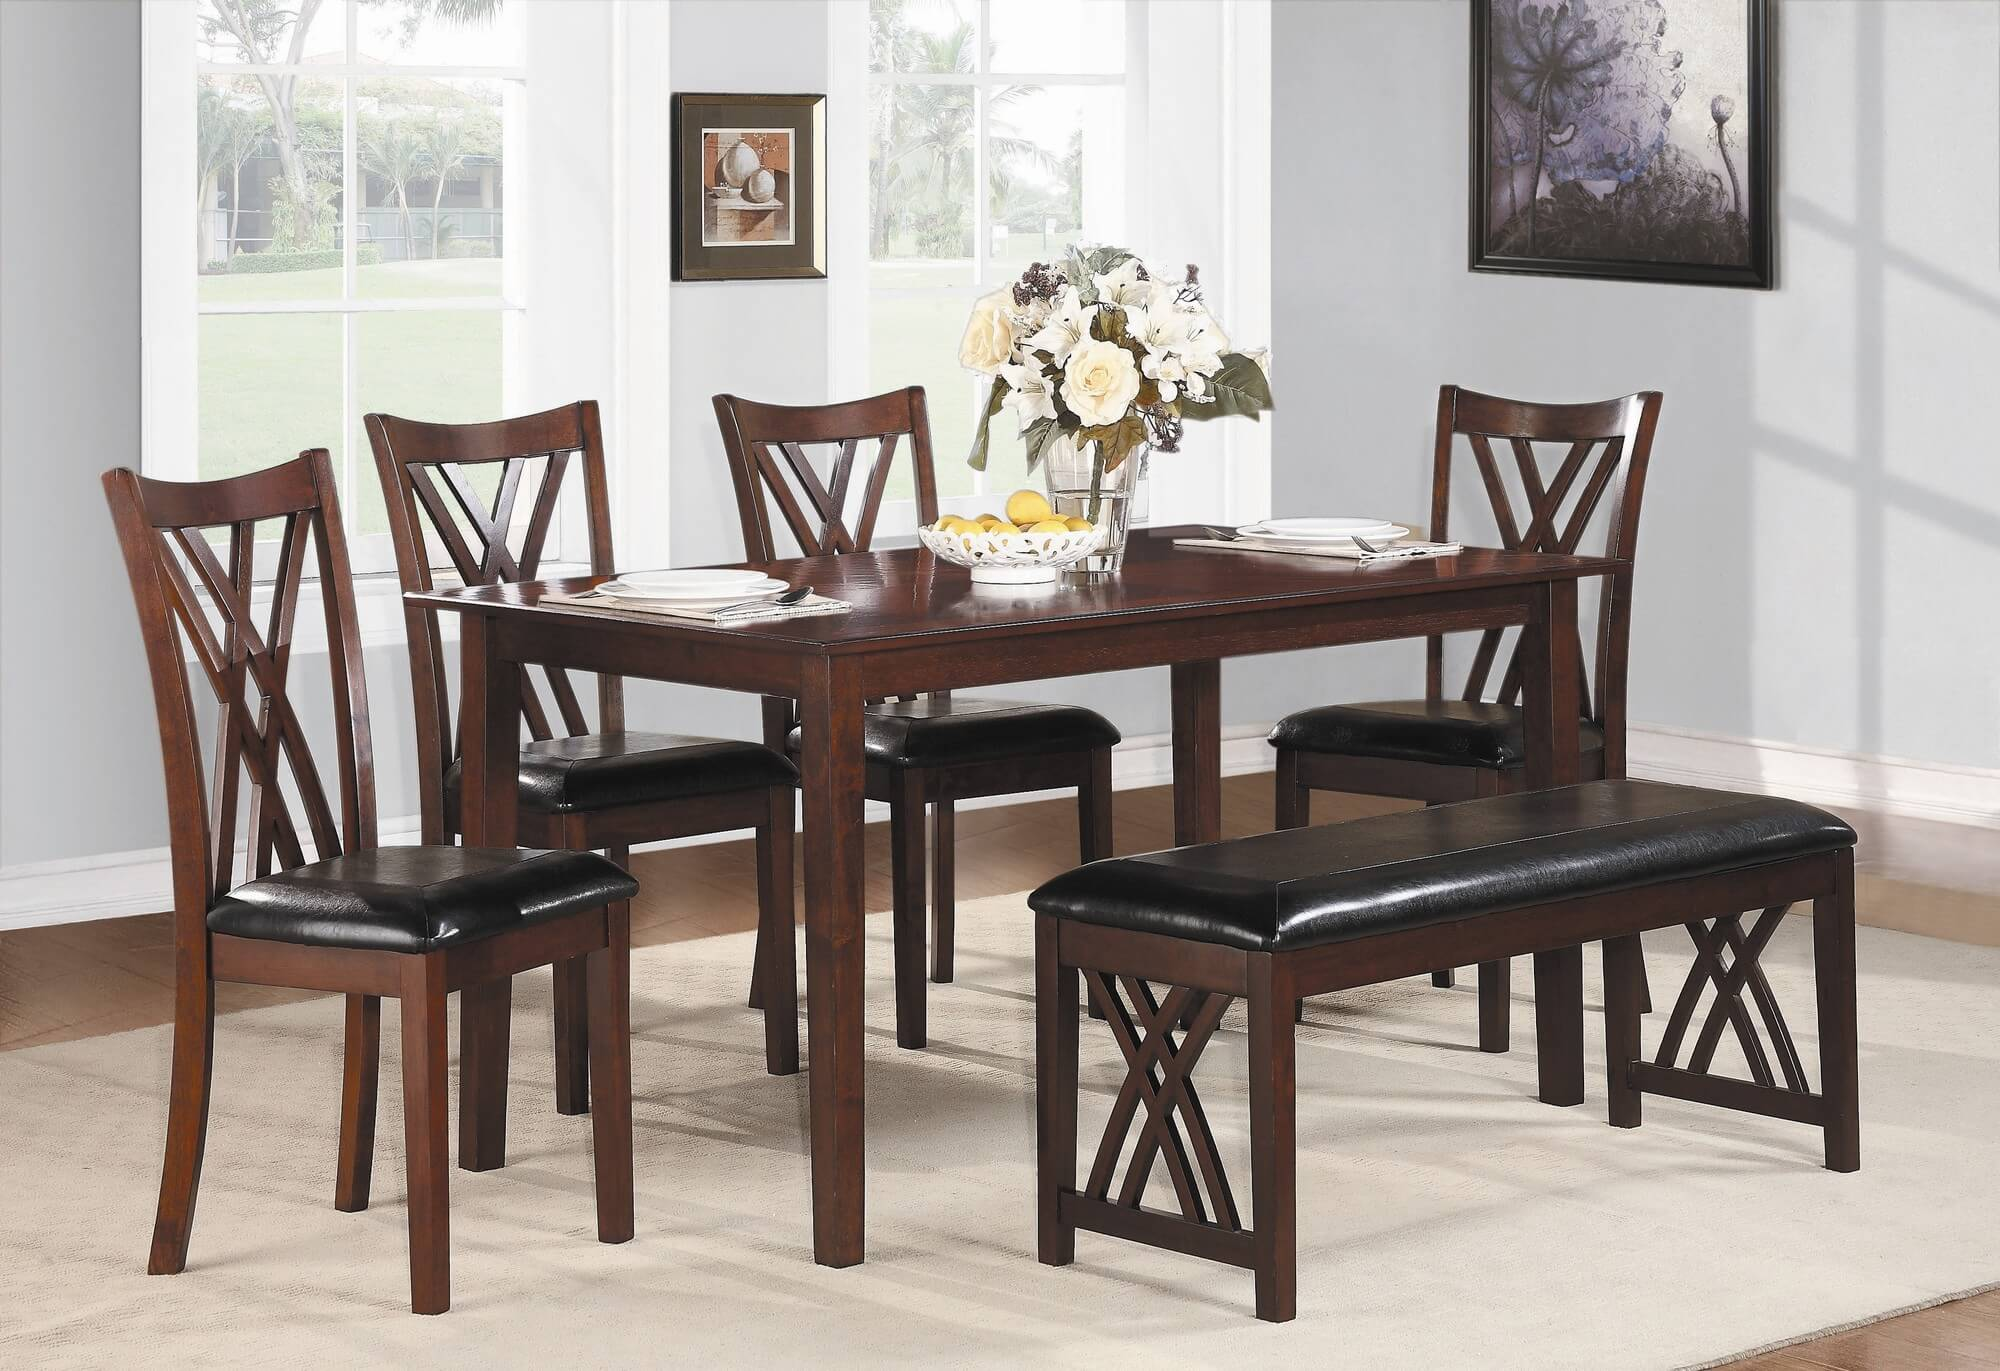 26 Big amp Small Dining Room Sets with Bench Seating : 13way dining room set with bench from www.homestratosphere.com size 2000 x 1371 jpeg 248kB